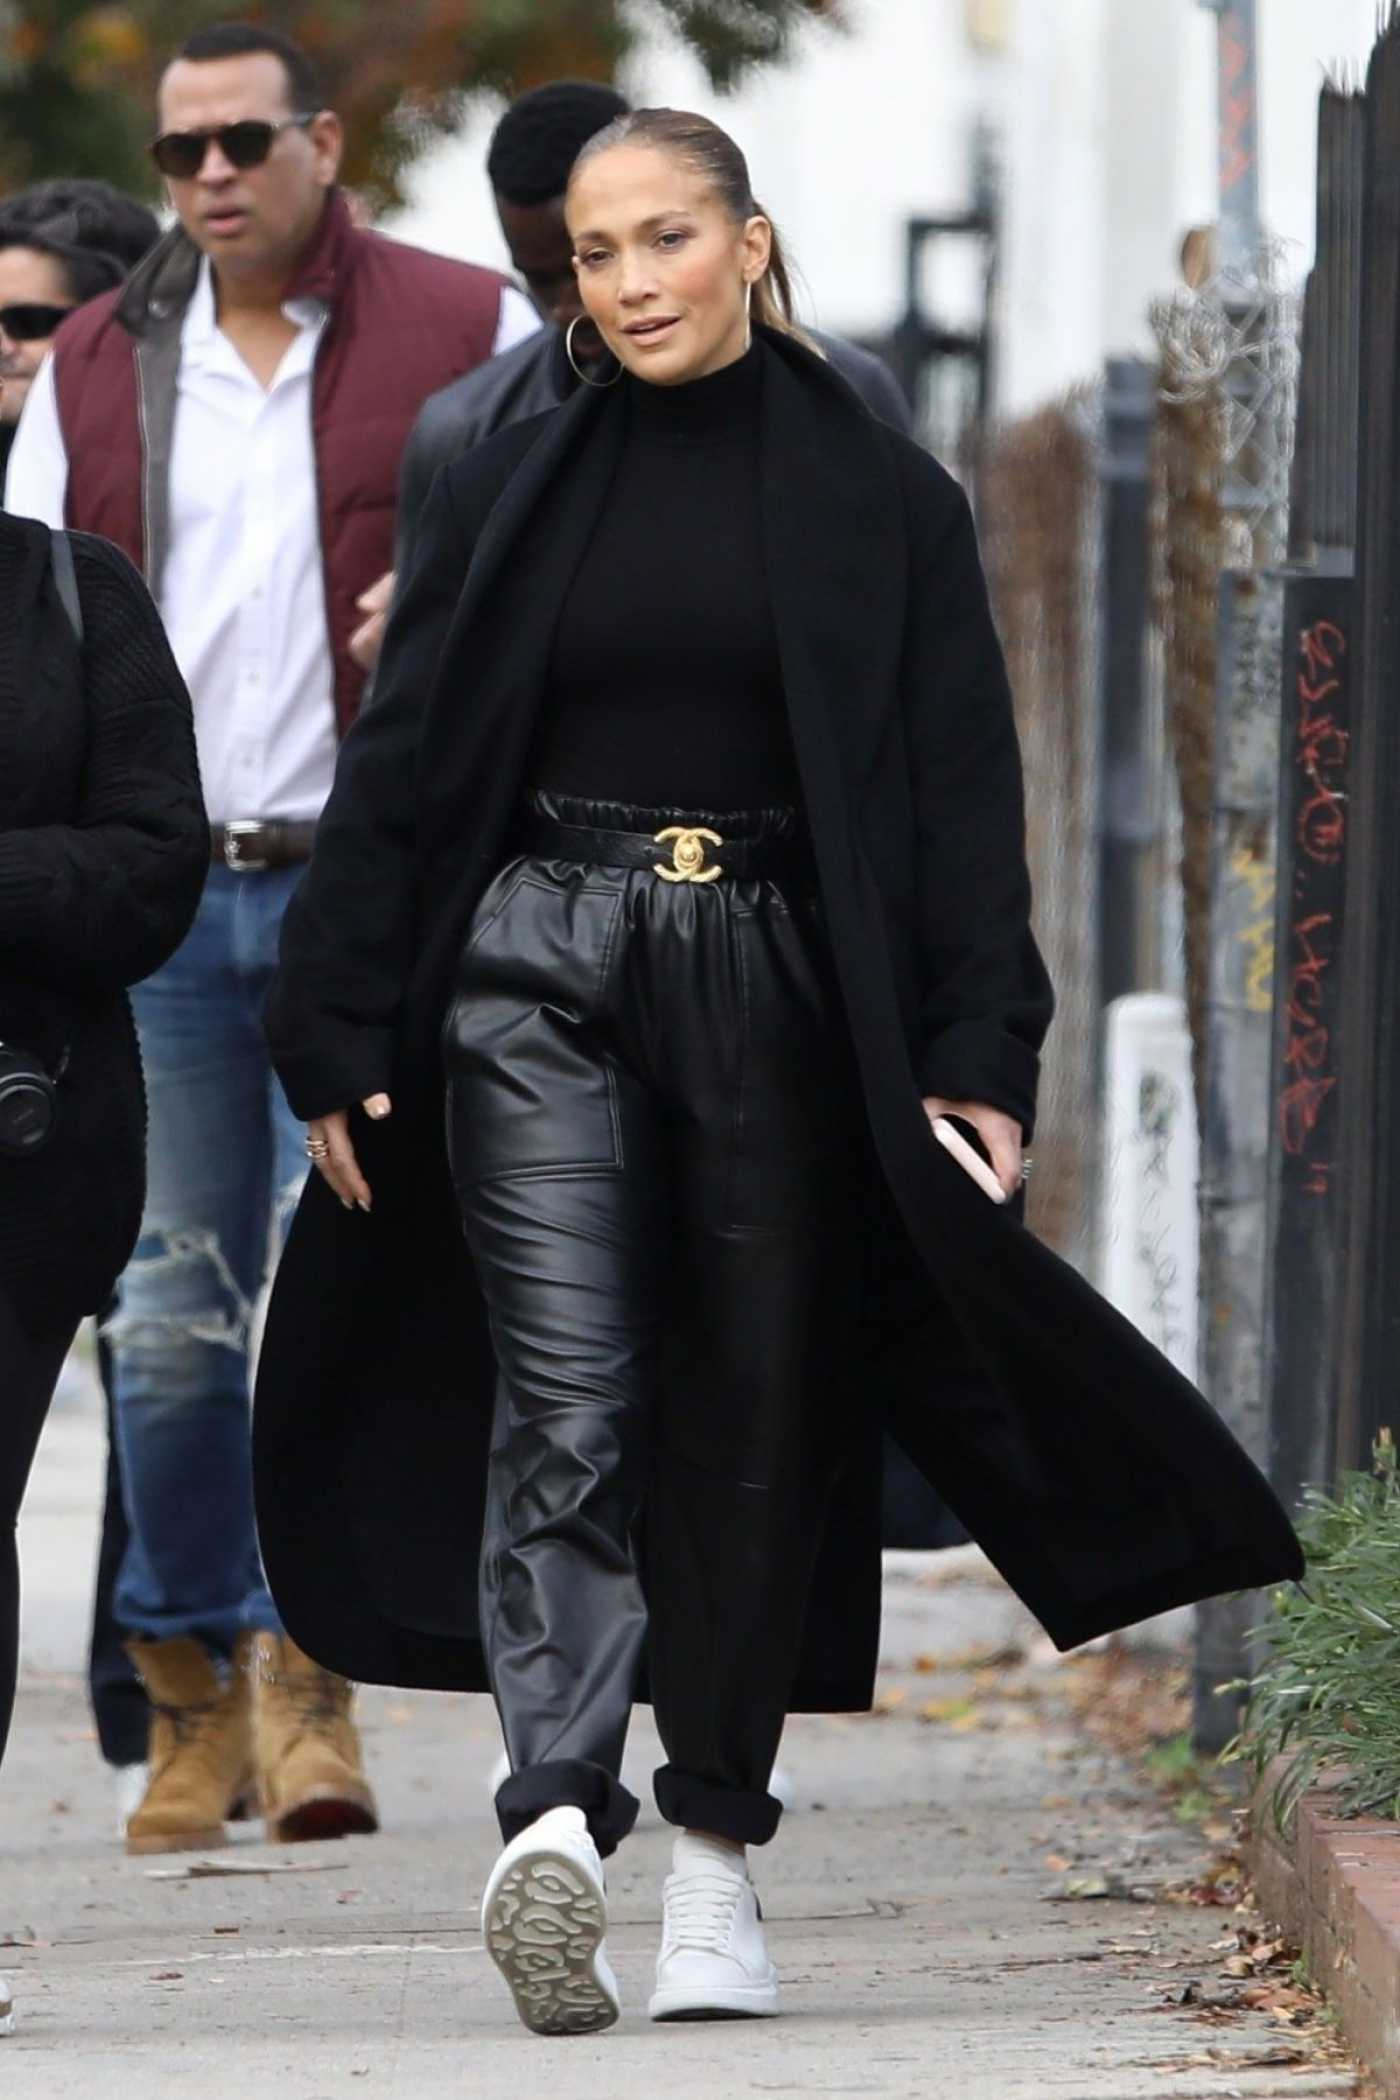 Jennifer Lopez in a Black Coat Was Seen Out with Alex Rodriguez in Hollywood 12/29/2019